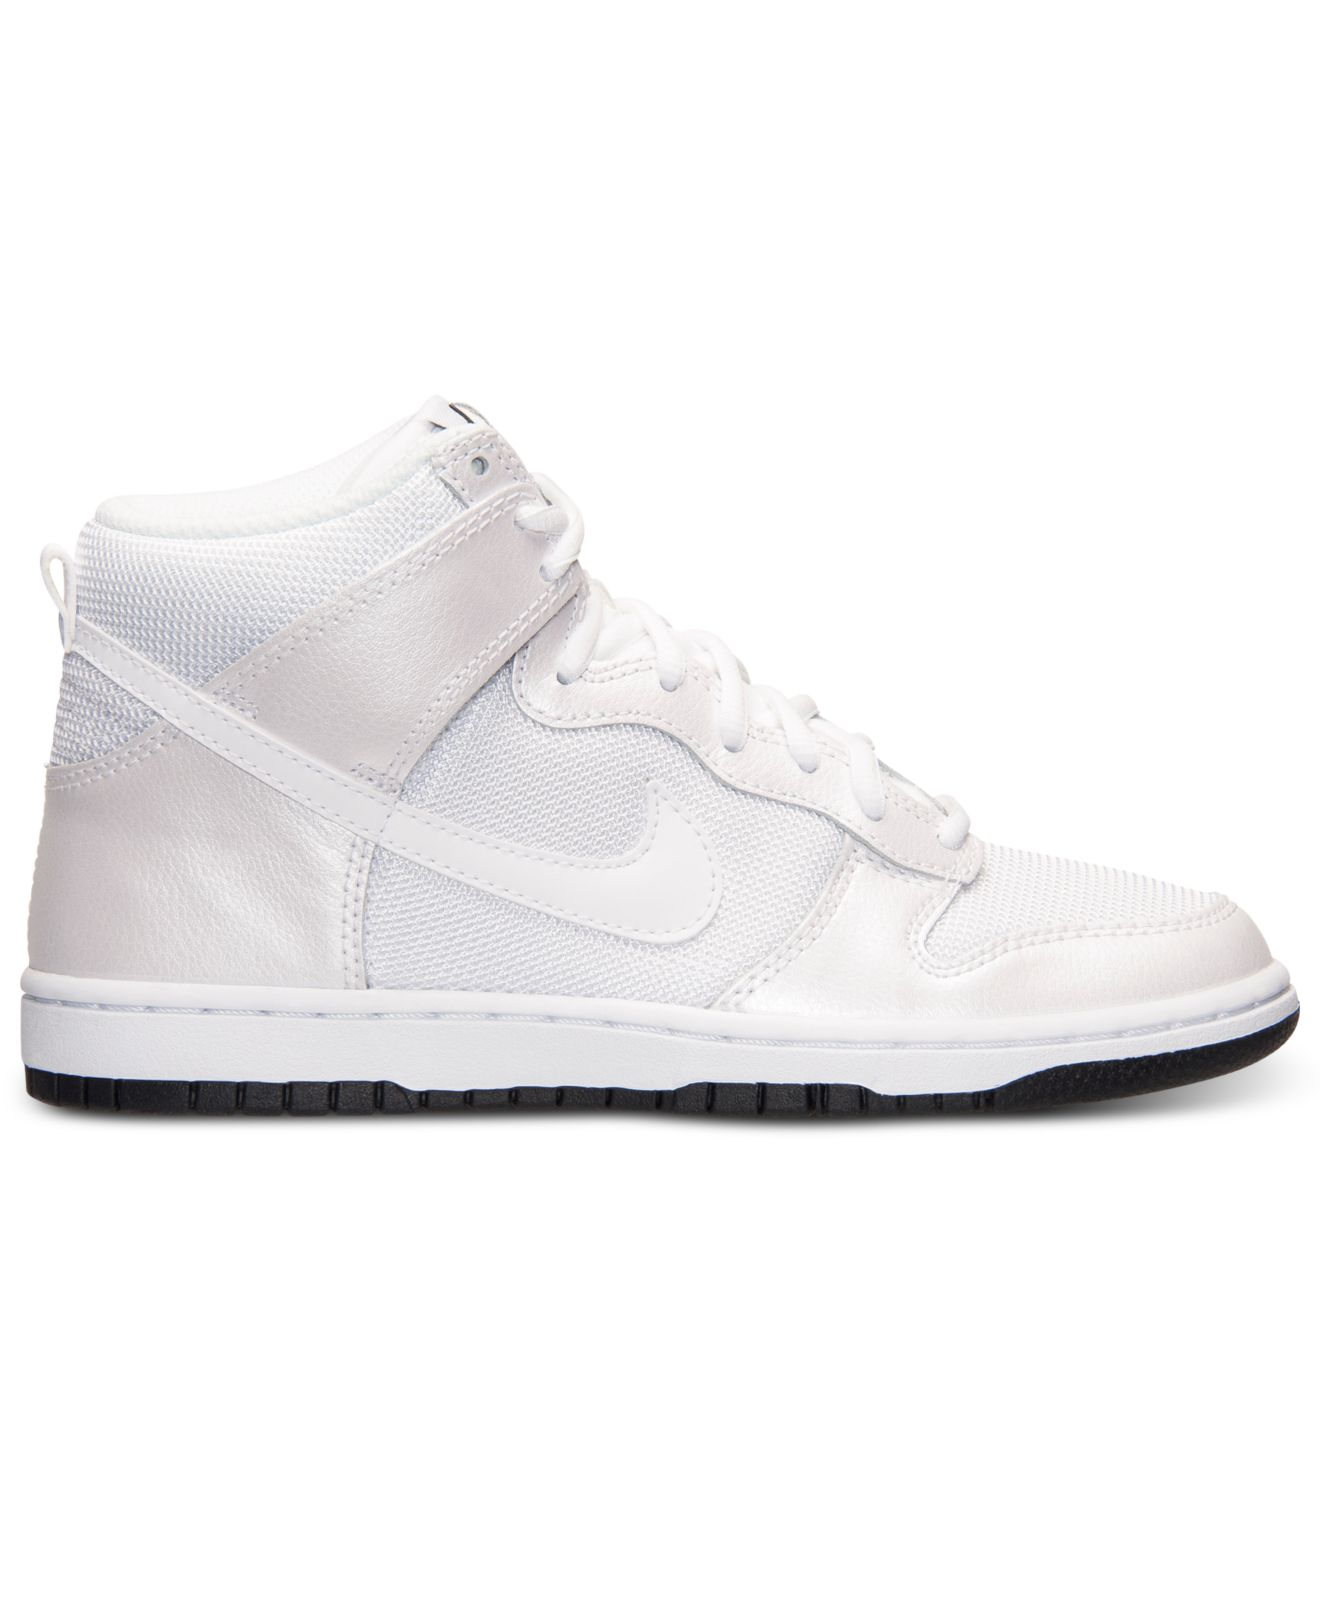 Lyst - Nike Women s Dunk High Skinny Casual Sneakers From Finish ... fa51f0e67f93